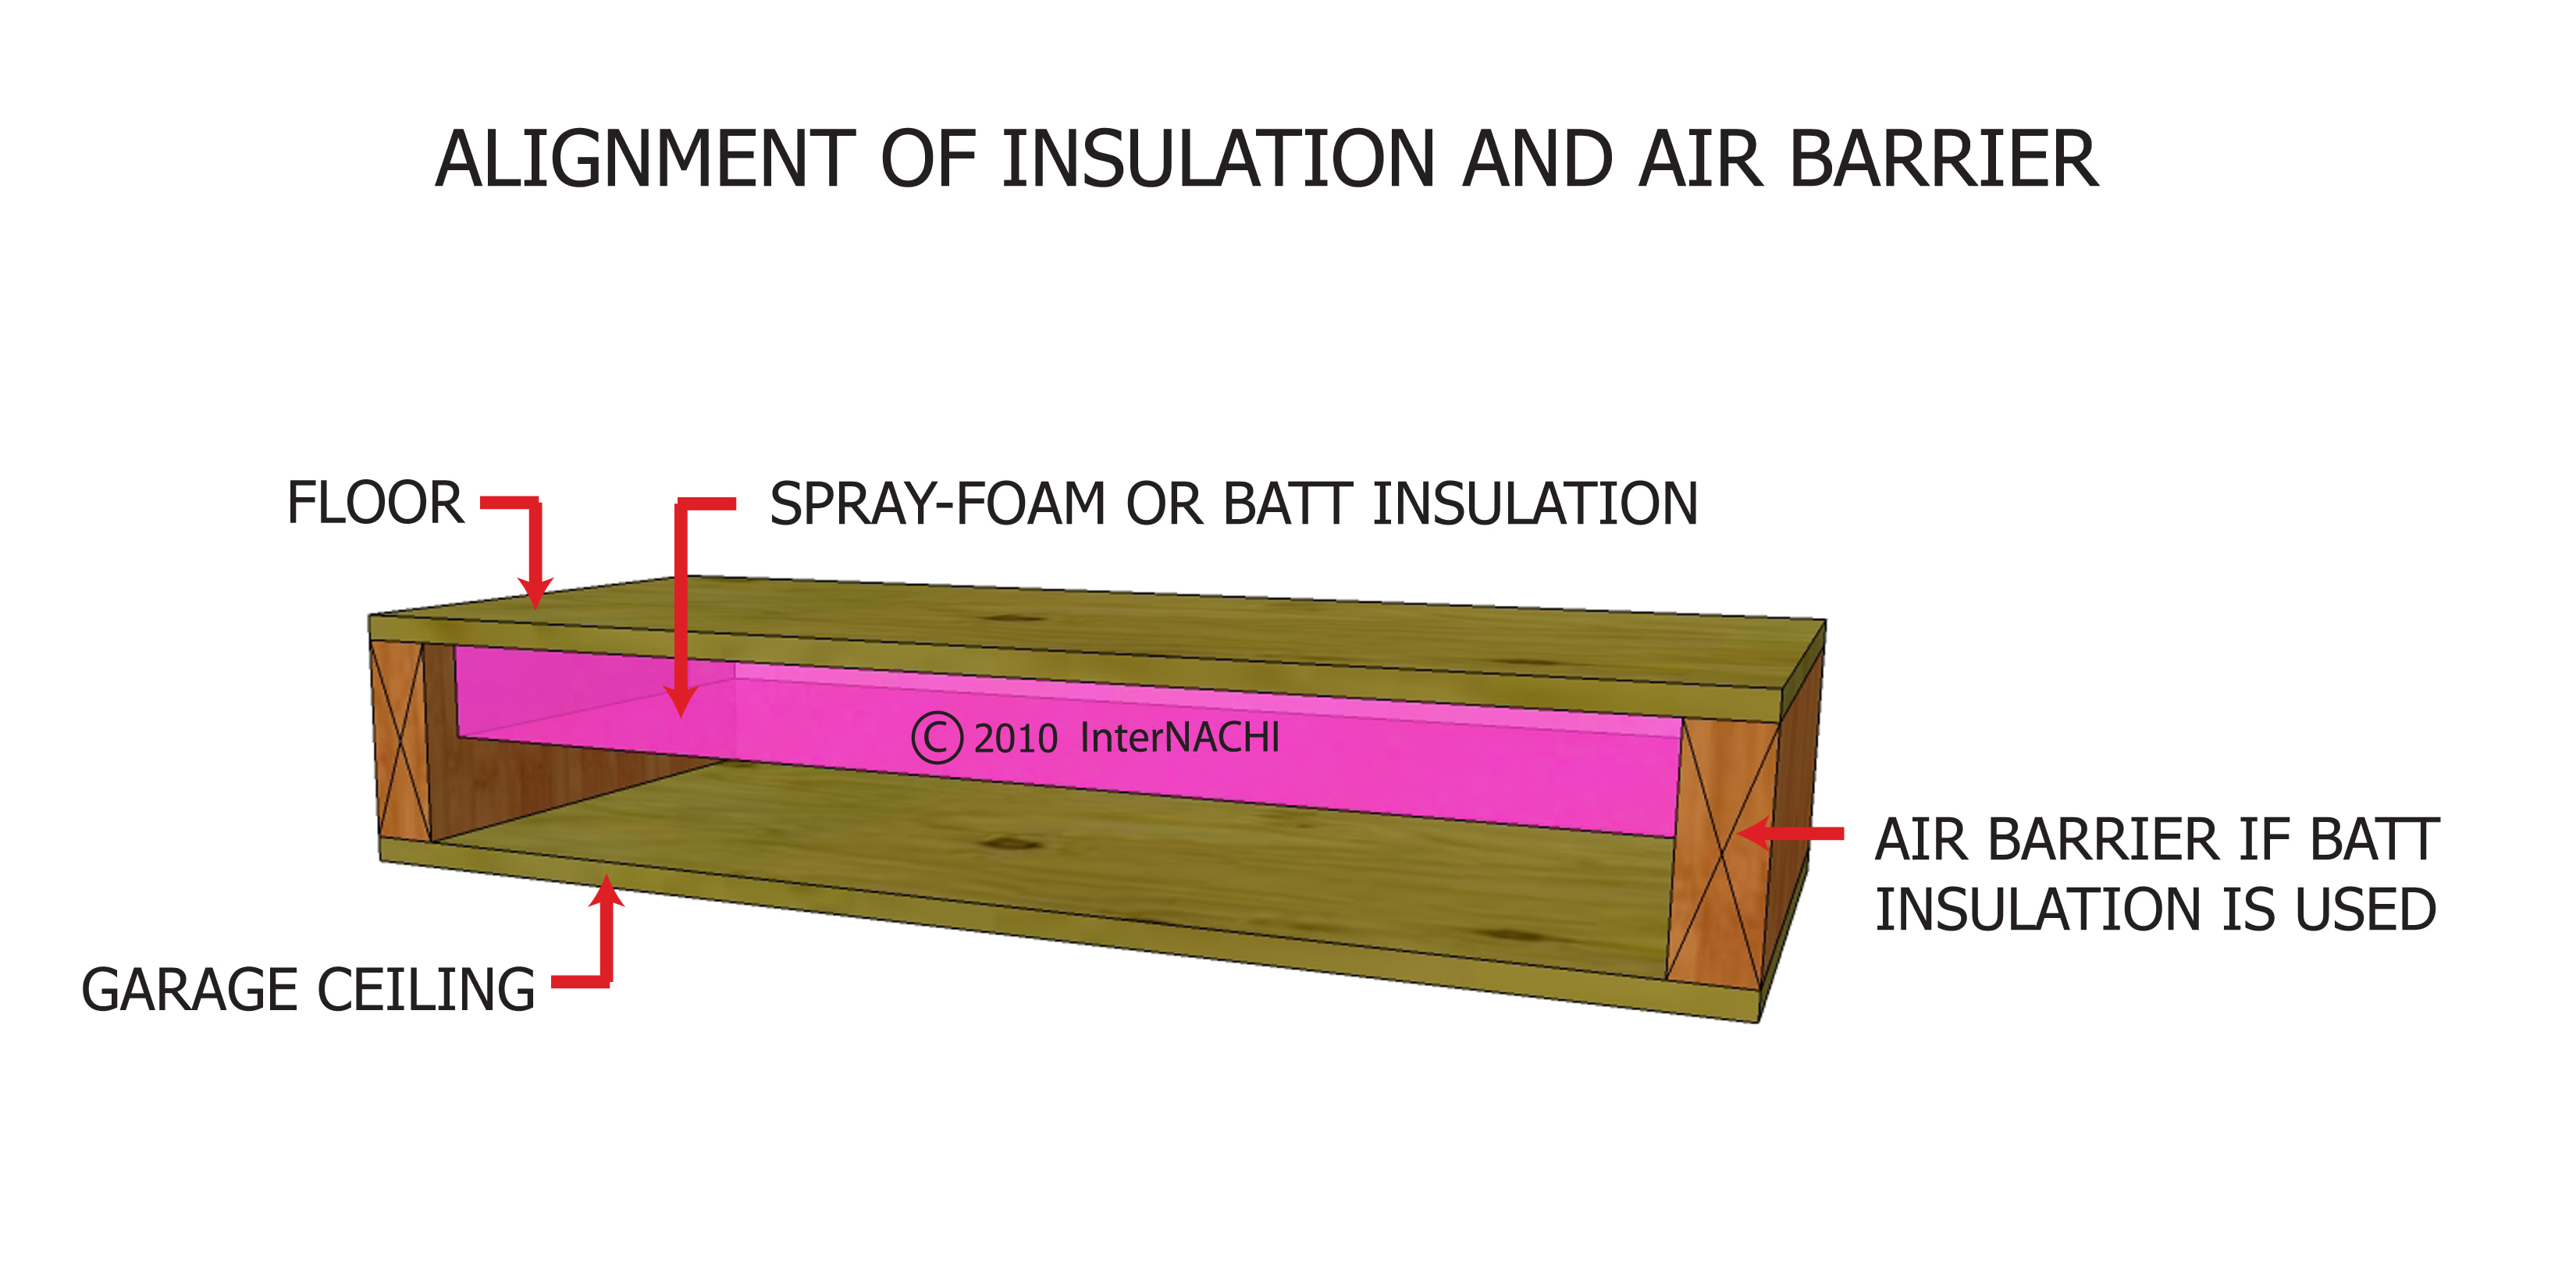 Alignment of insulation and air barrier.